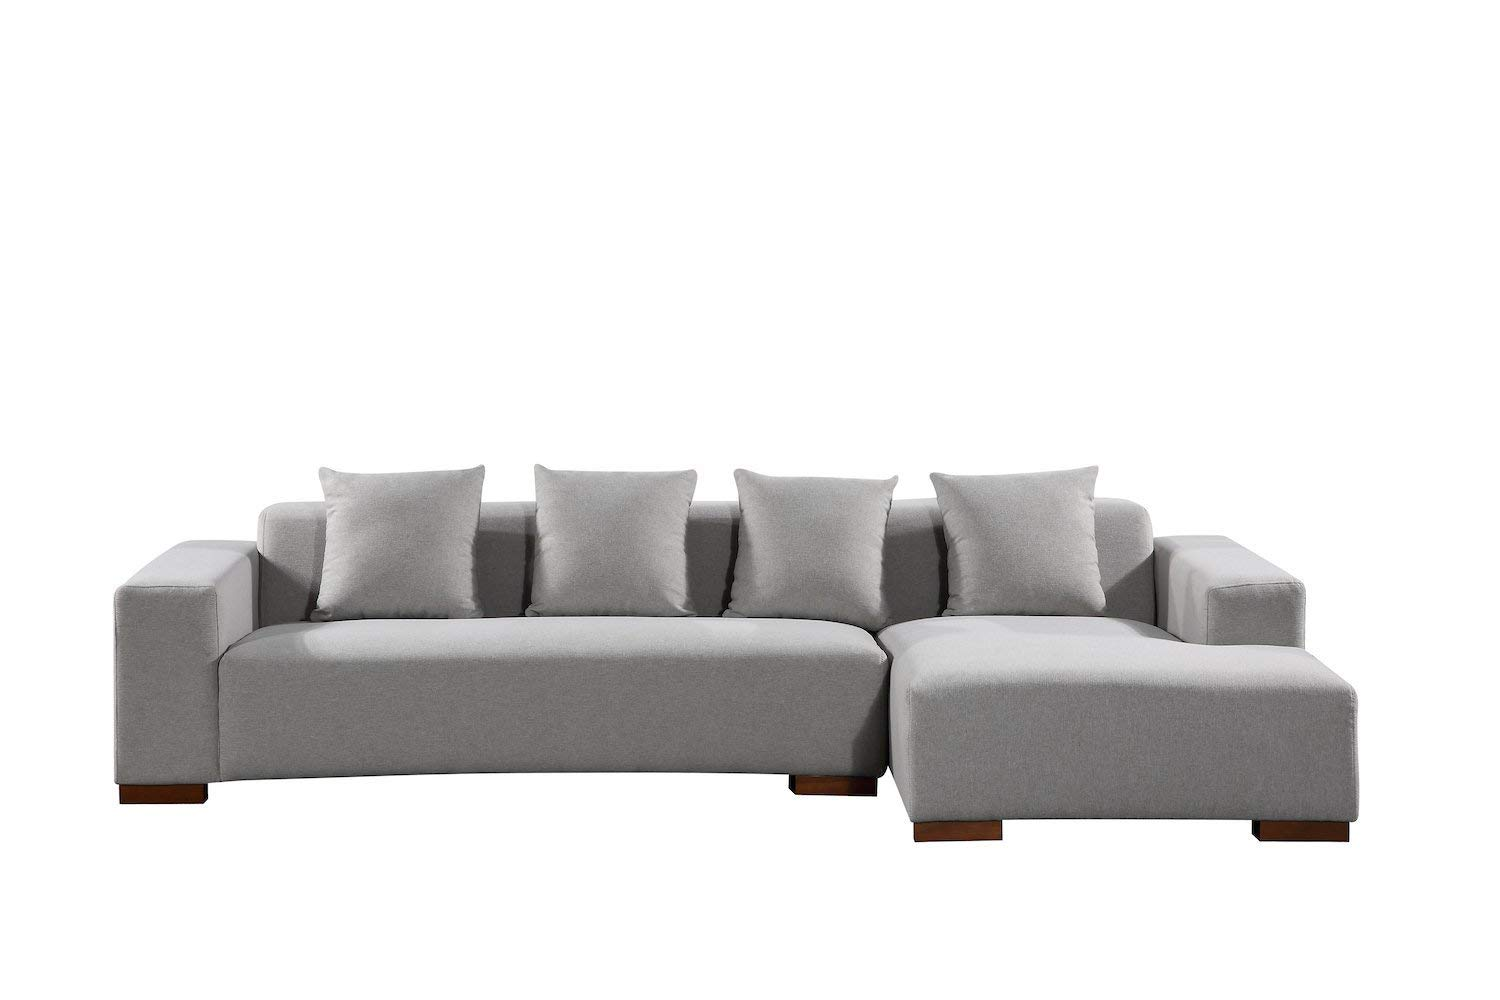 Velago Lyon Modern Fabric Sectional Sofa with Cushions, Light Gray